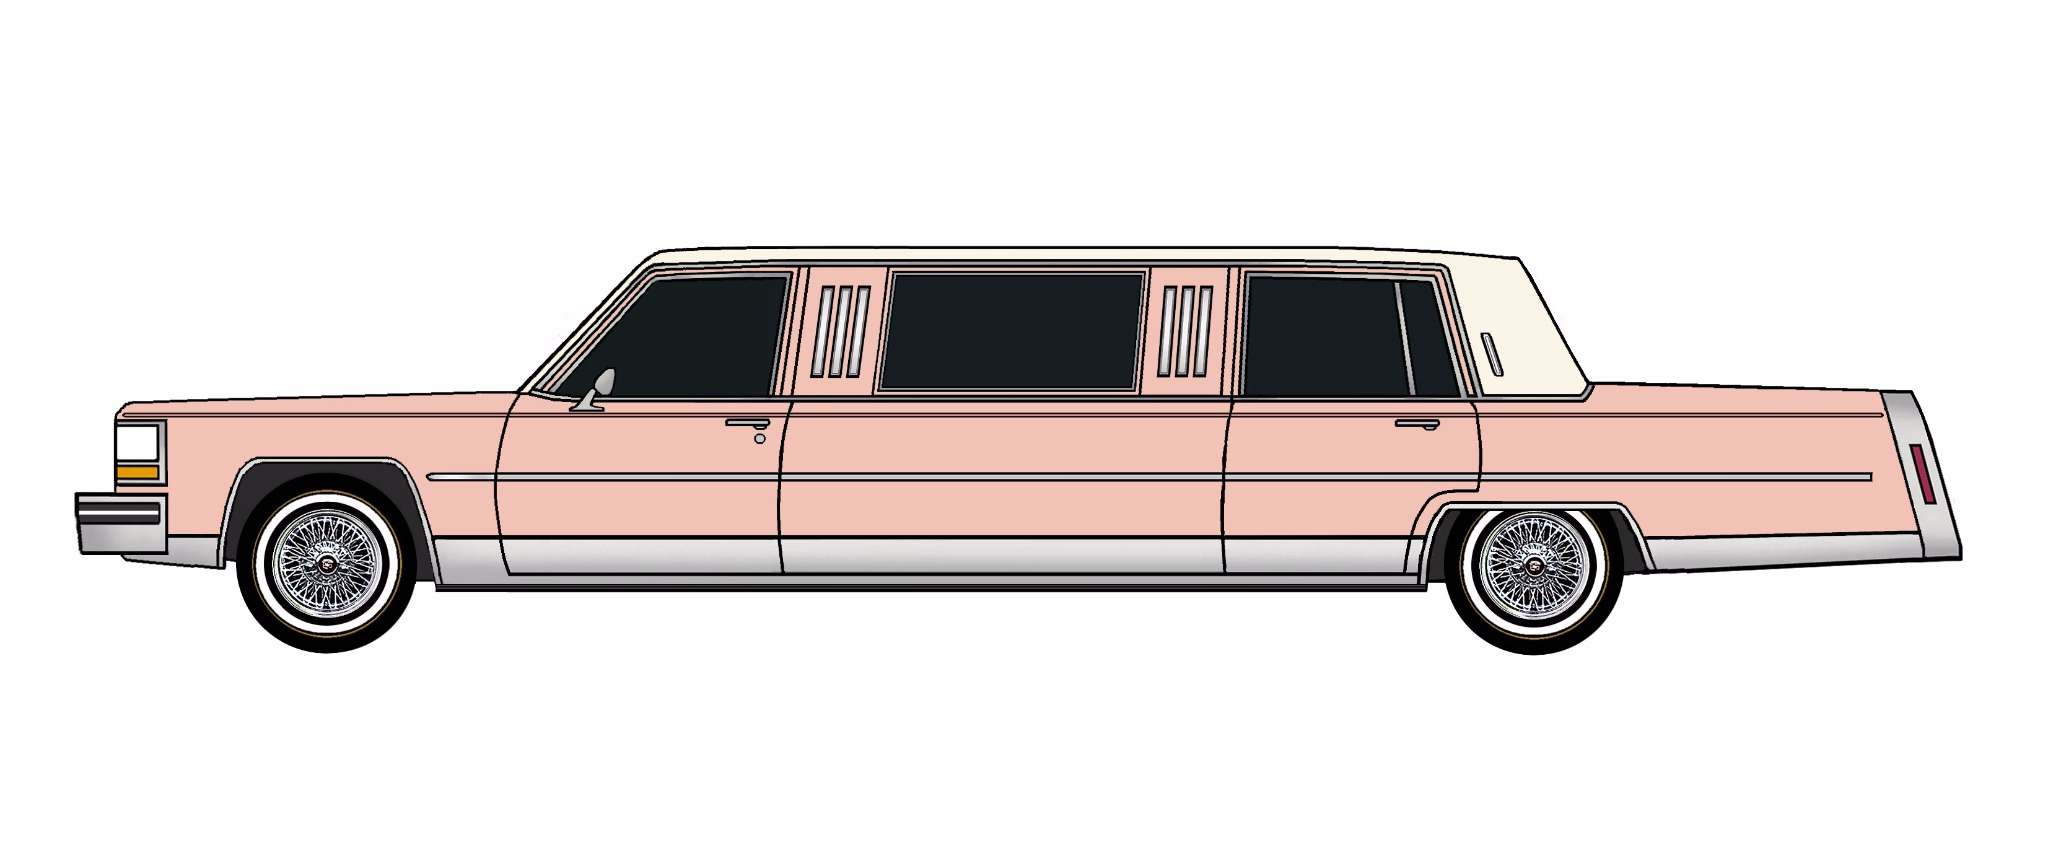 1984 Cadillac Fleetwood Brougham Limo ROSE PINK